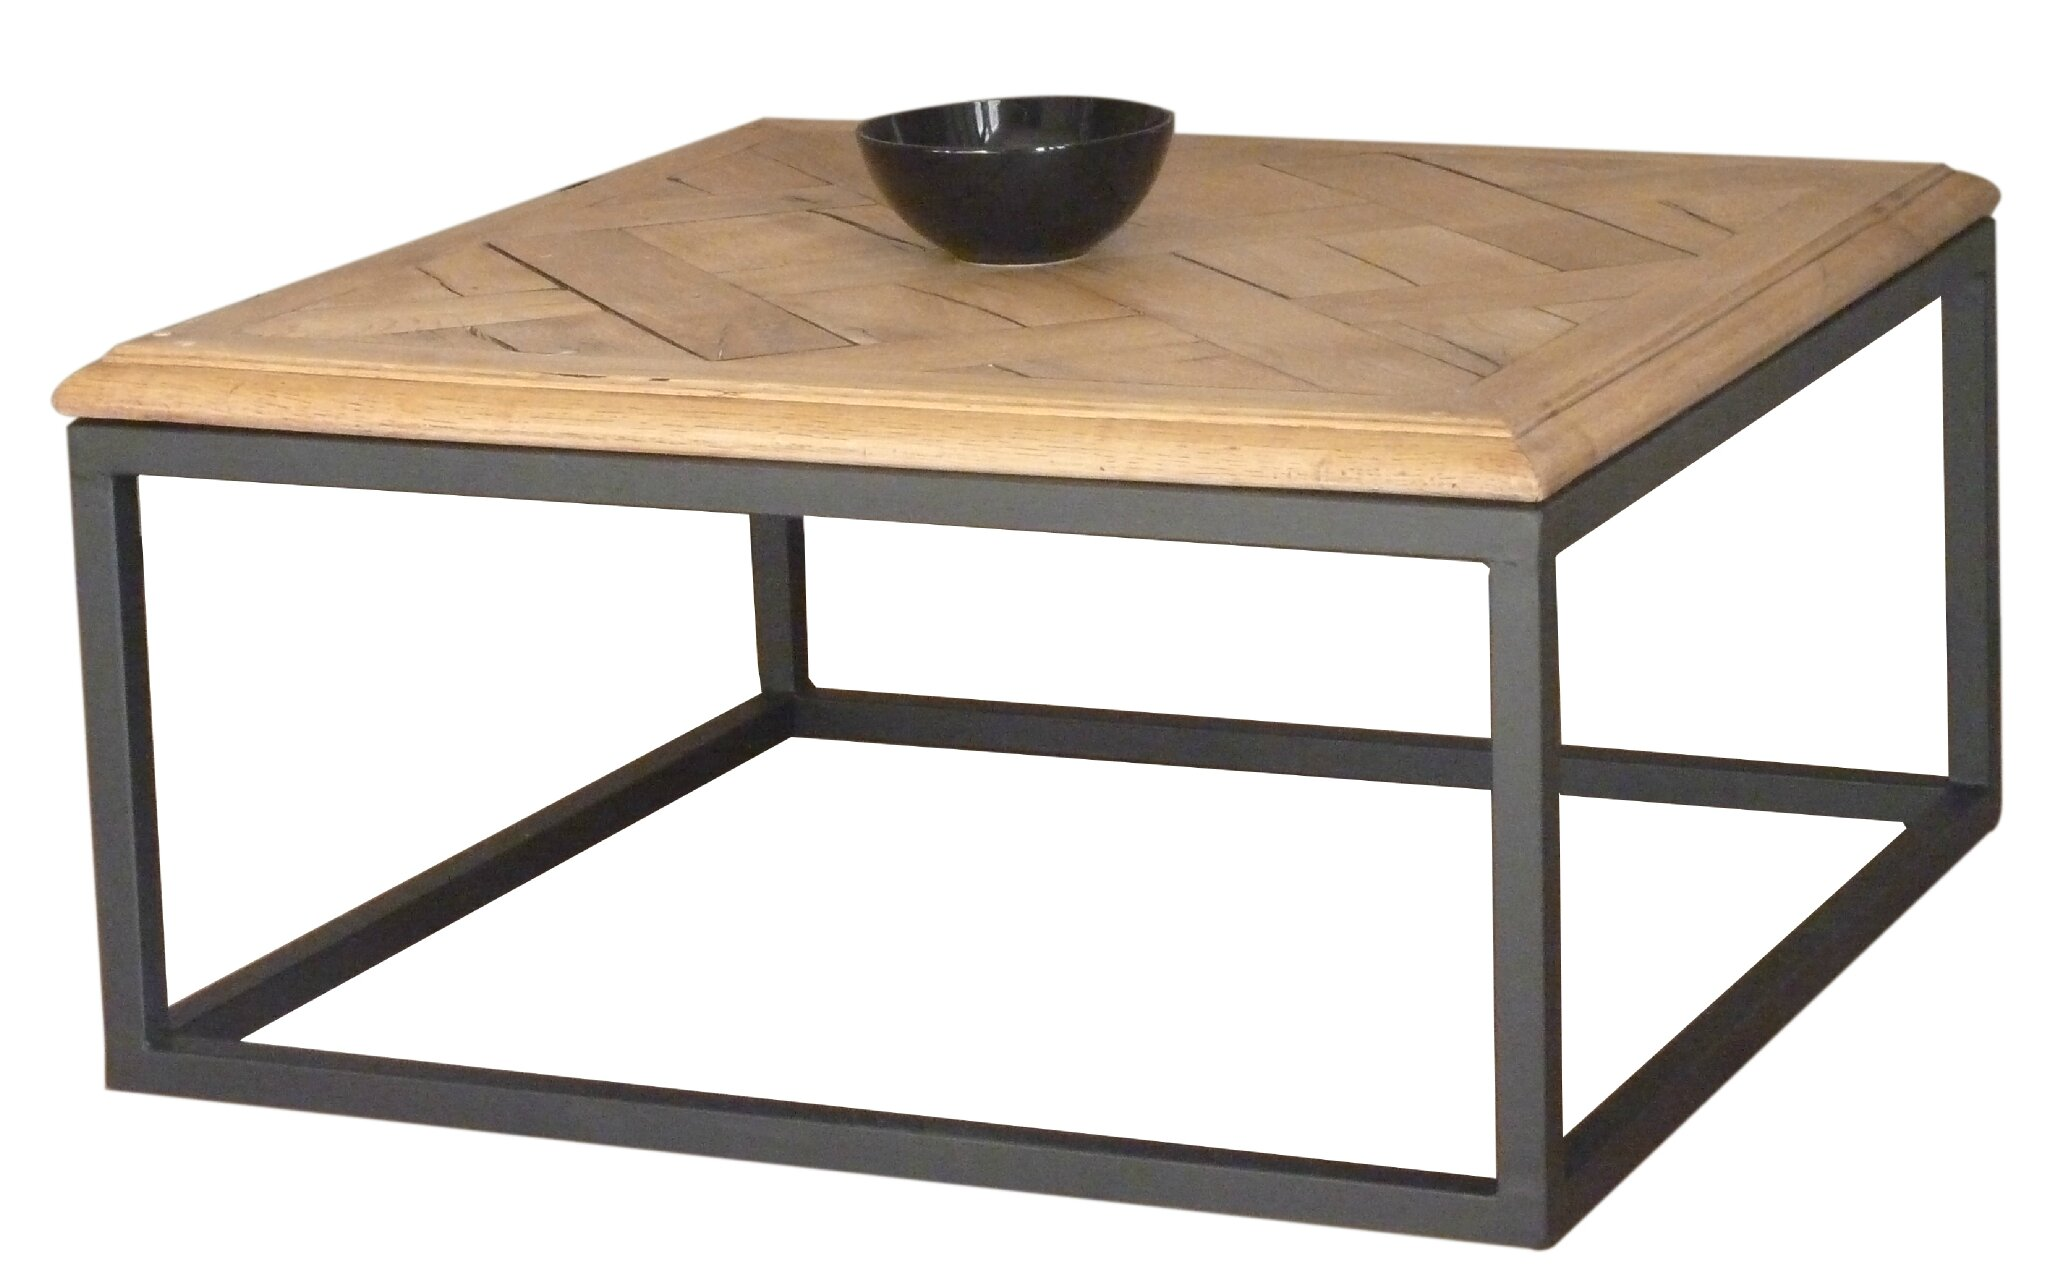 Table basse industrielle doccasion - Table basse originale pas cher ...